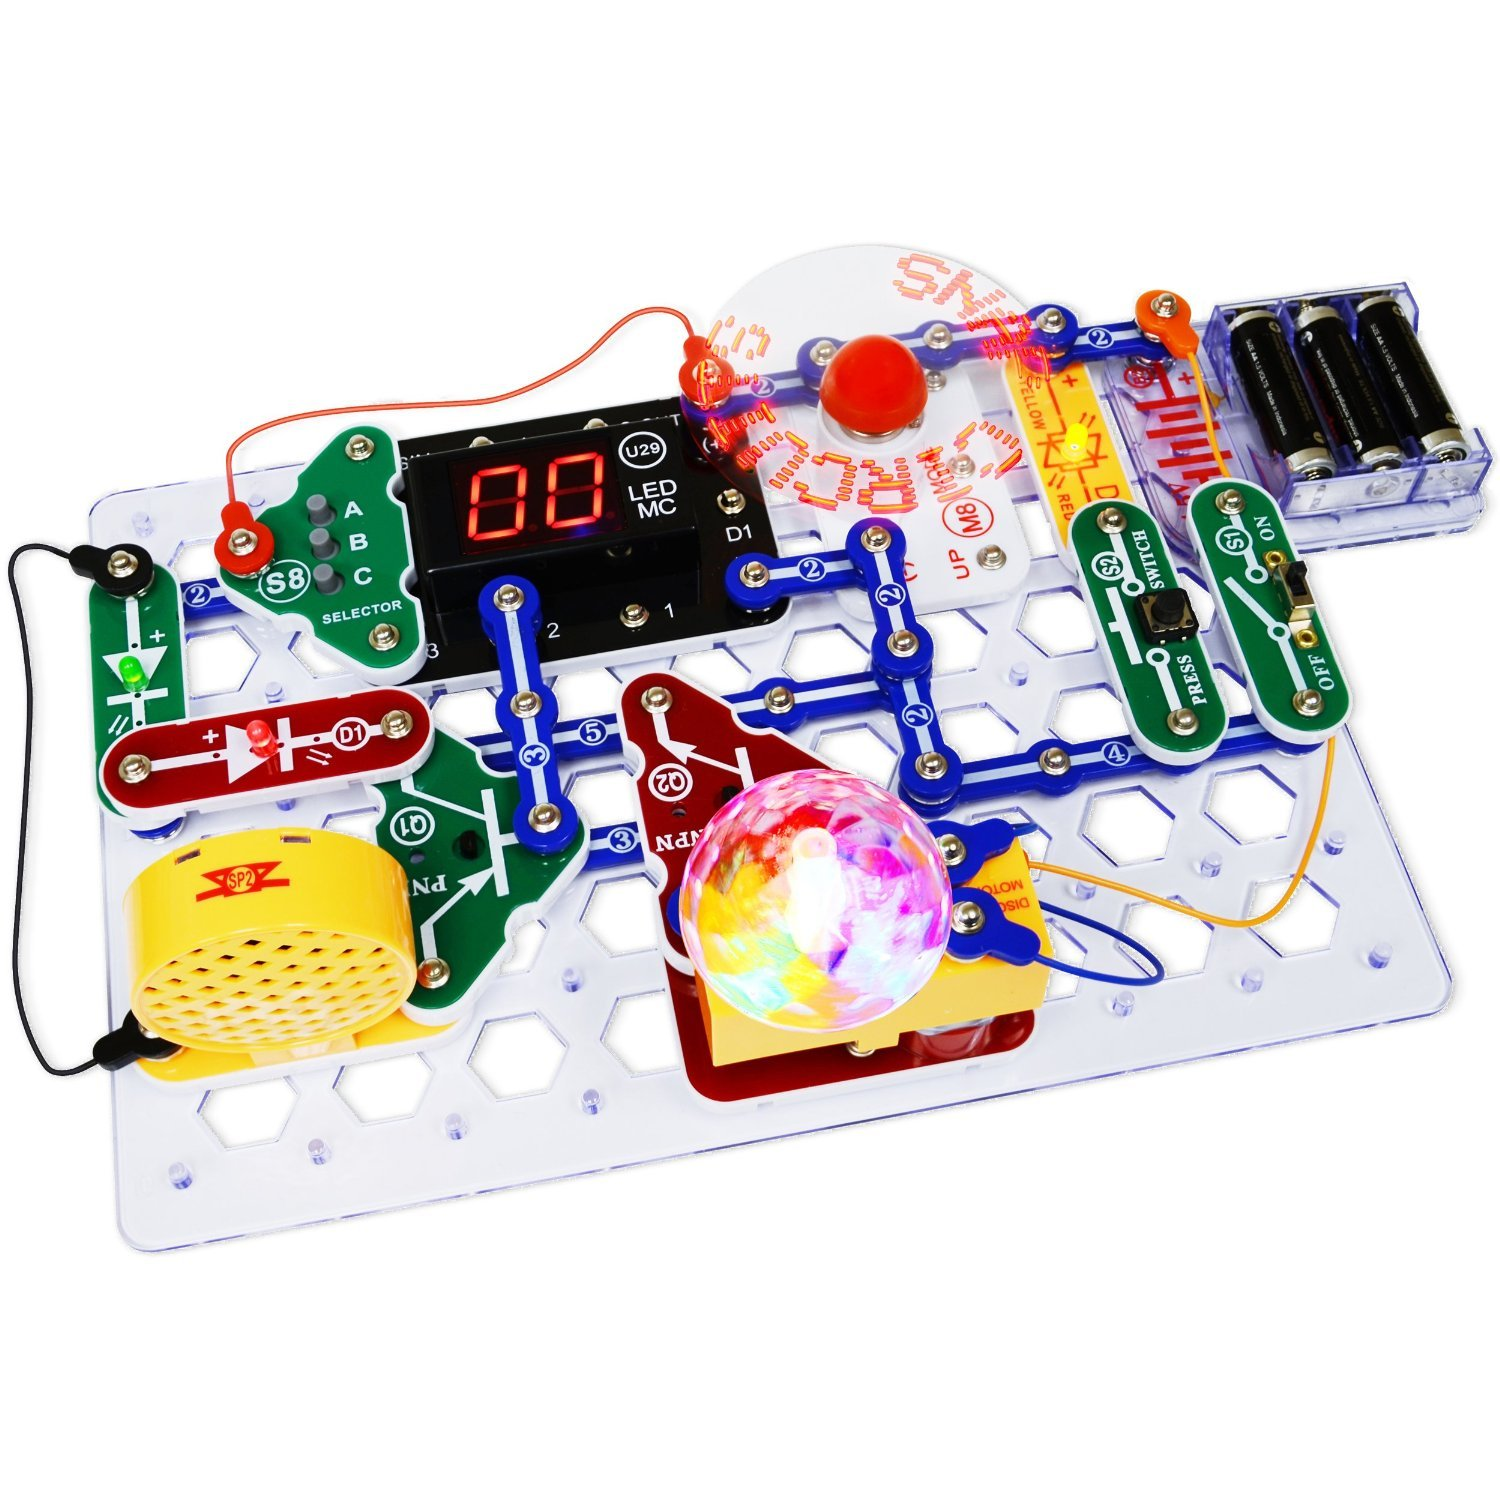 Snap Circuits Elenco Arcade Deluxe Electrical Manual Engineering Kit With Battery Eliminator Toys Games